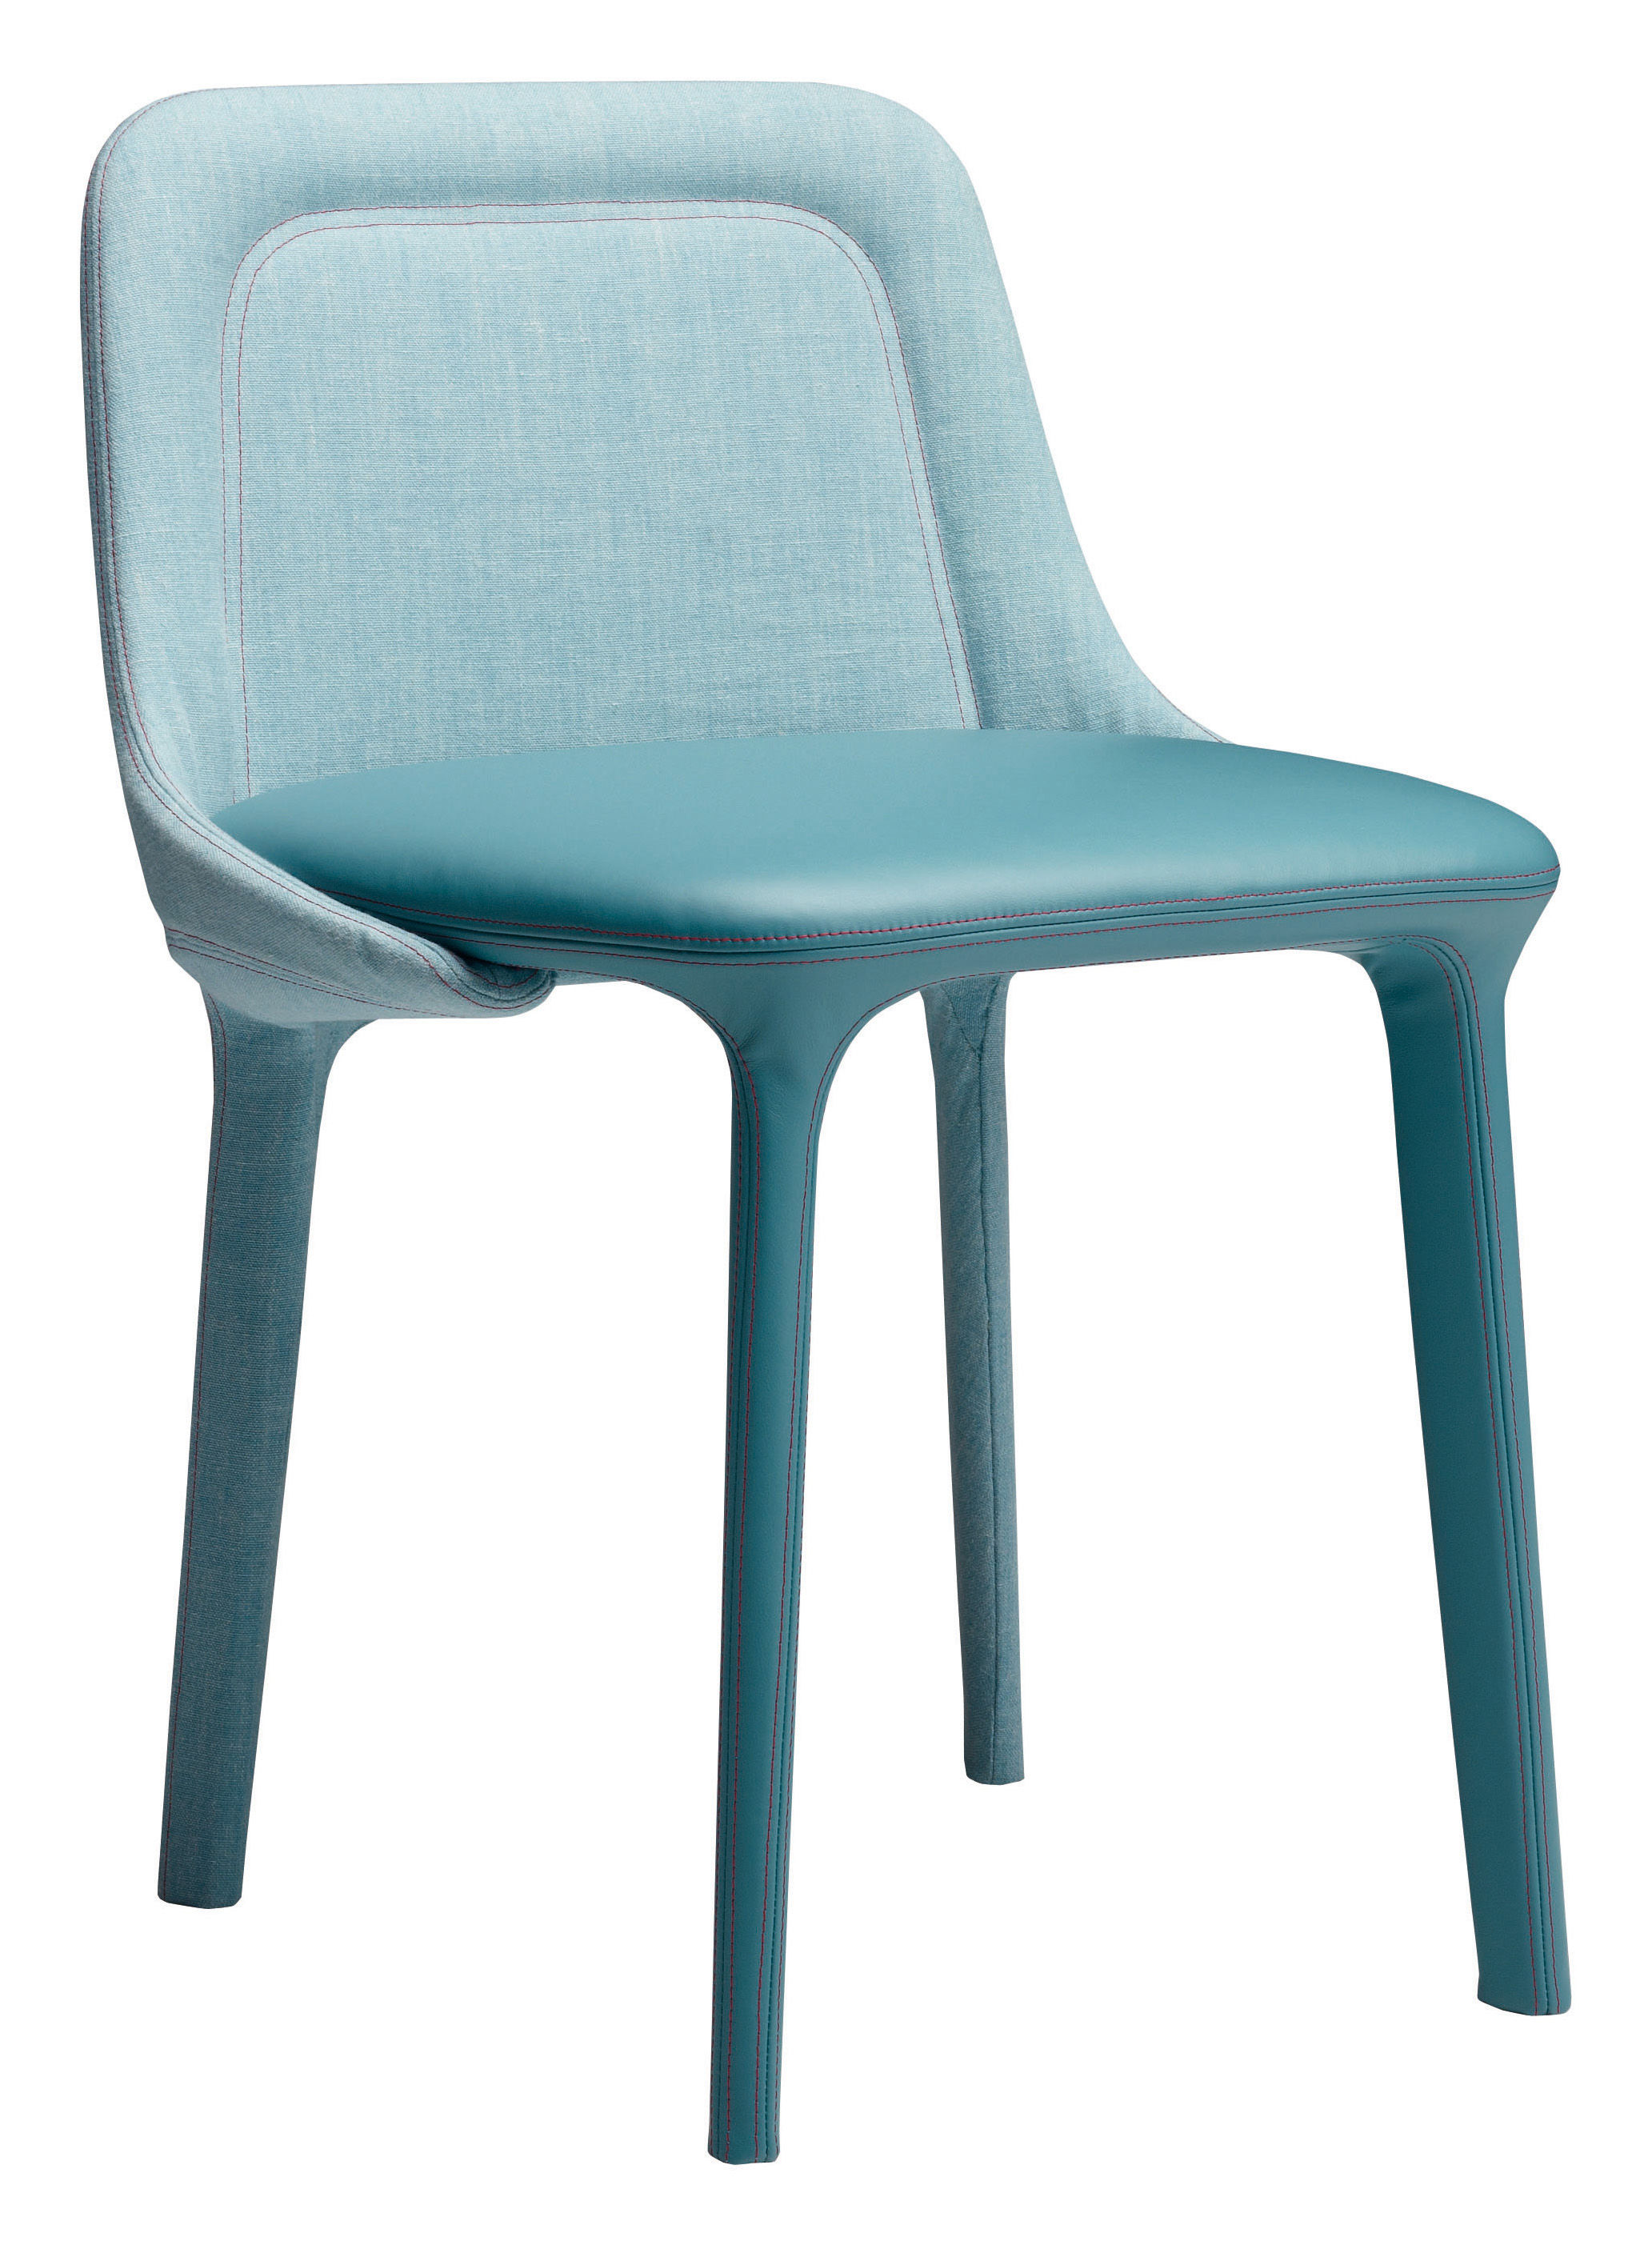 Furniture - Chairs - Lepel Padded chair - Leather & fabric by Casamania - Blue Florida leather seat / Blue Willow fabric back - Kvadrat fabric, Leather, Metal, Polyurethane foam